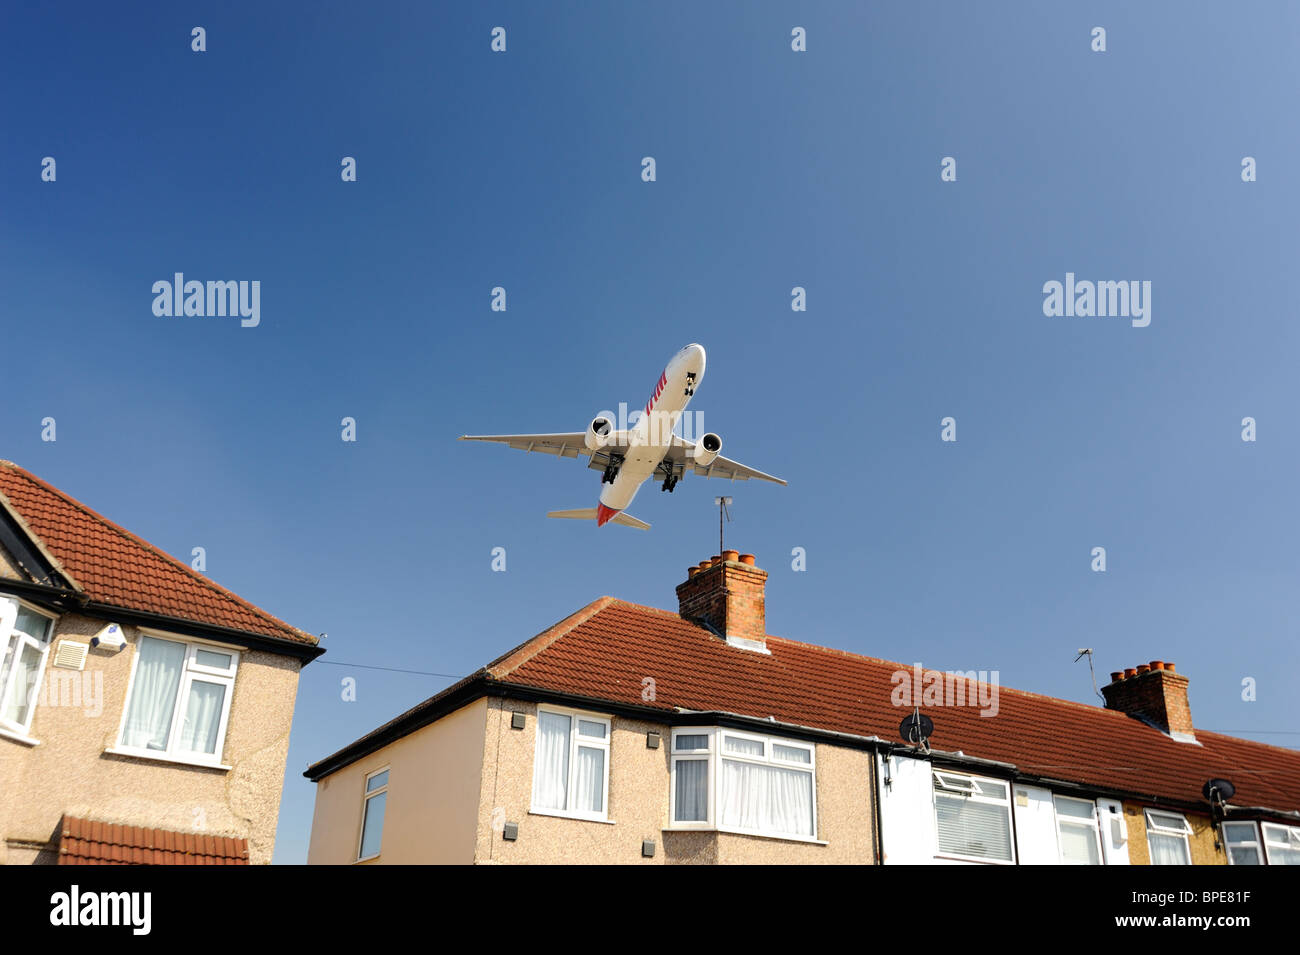 Airplane flying low over house prior to landing - Stock Image